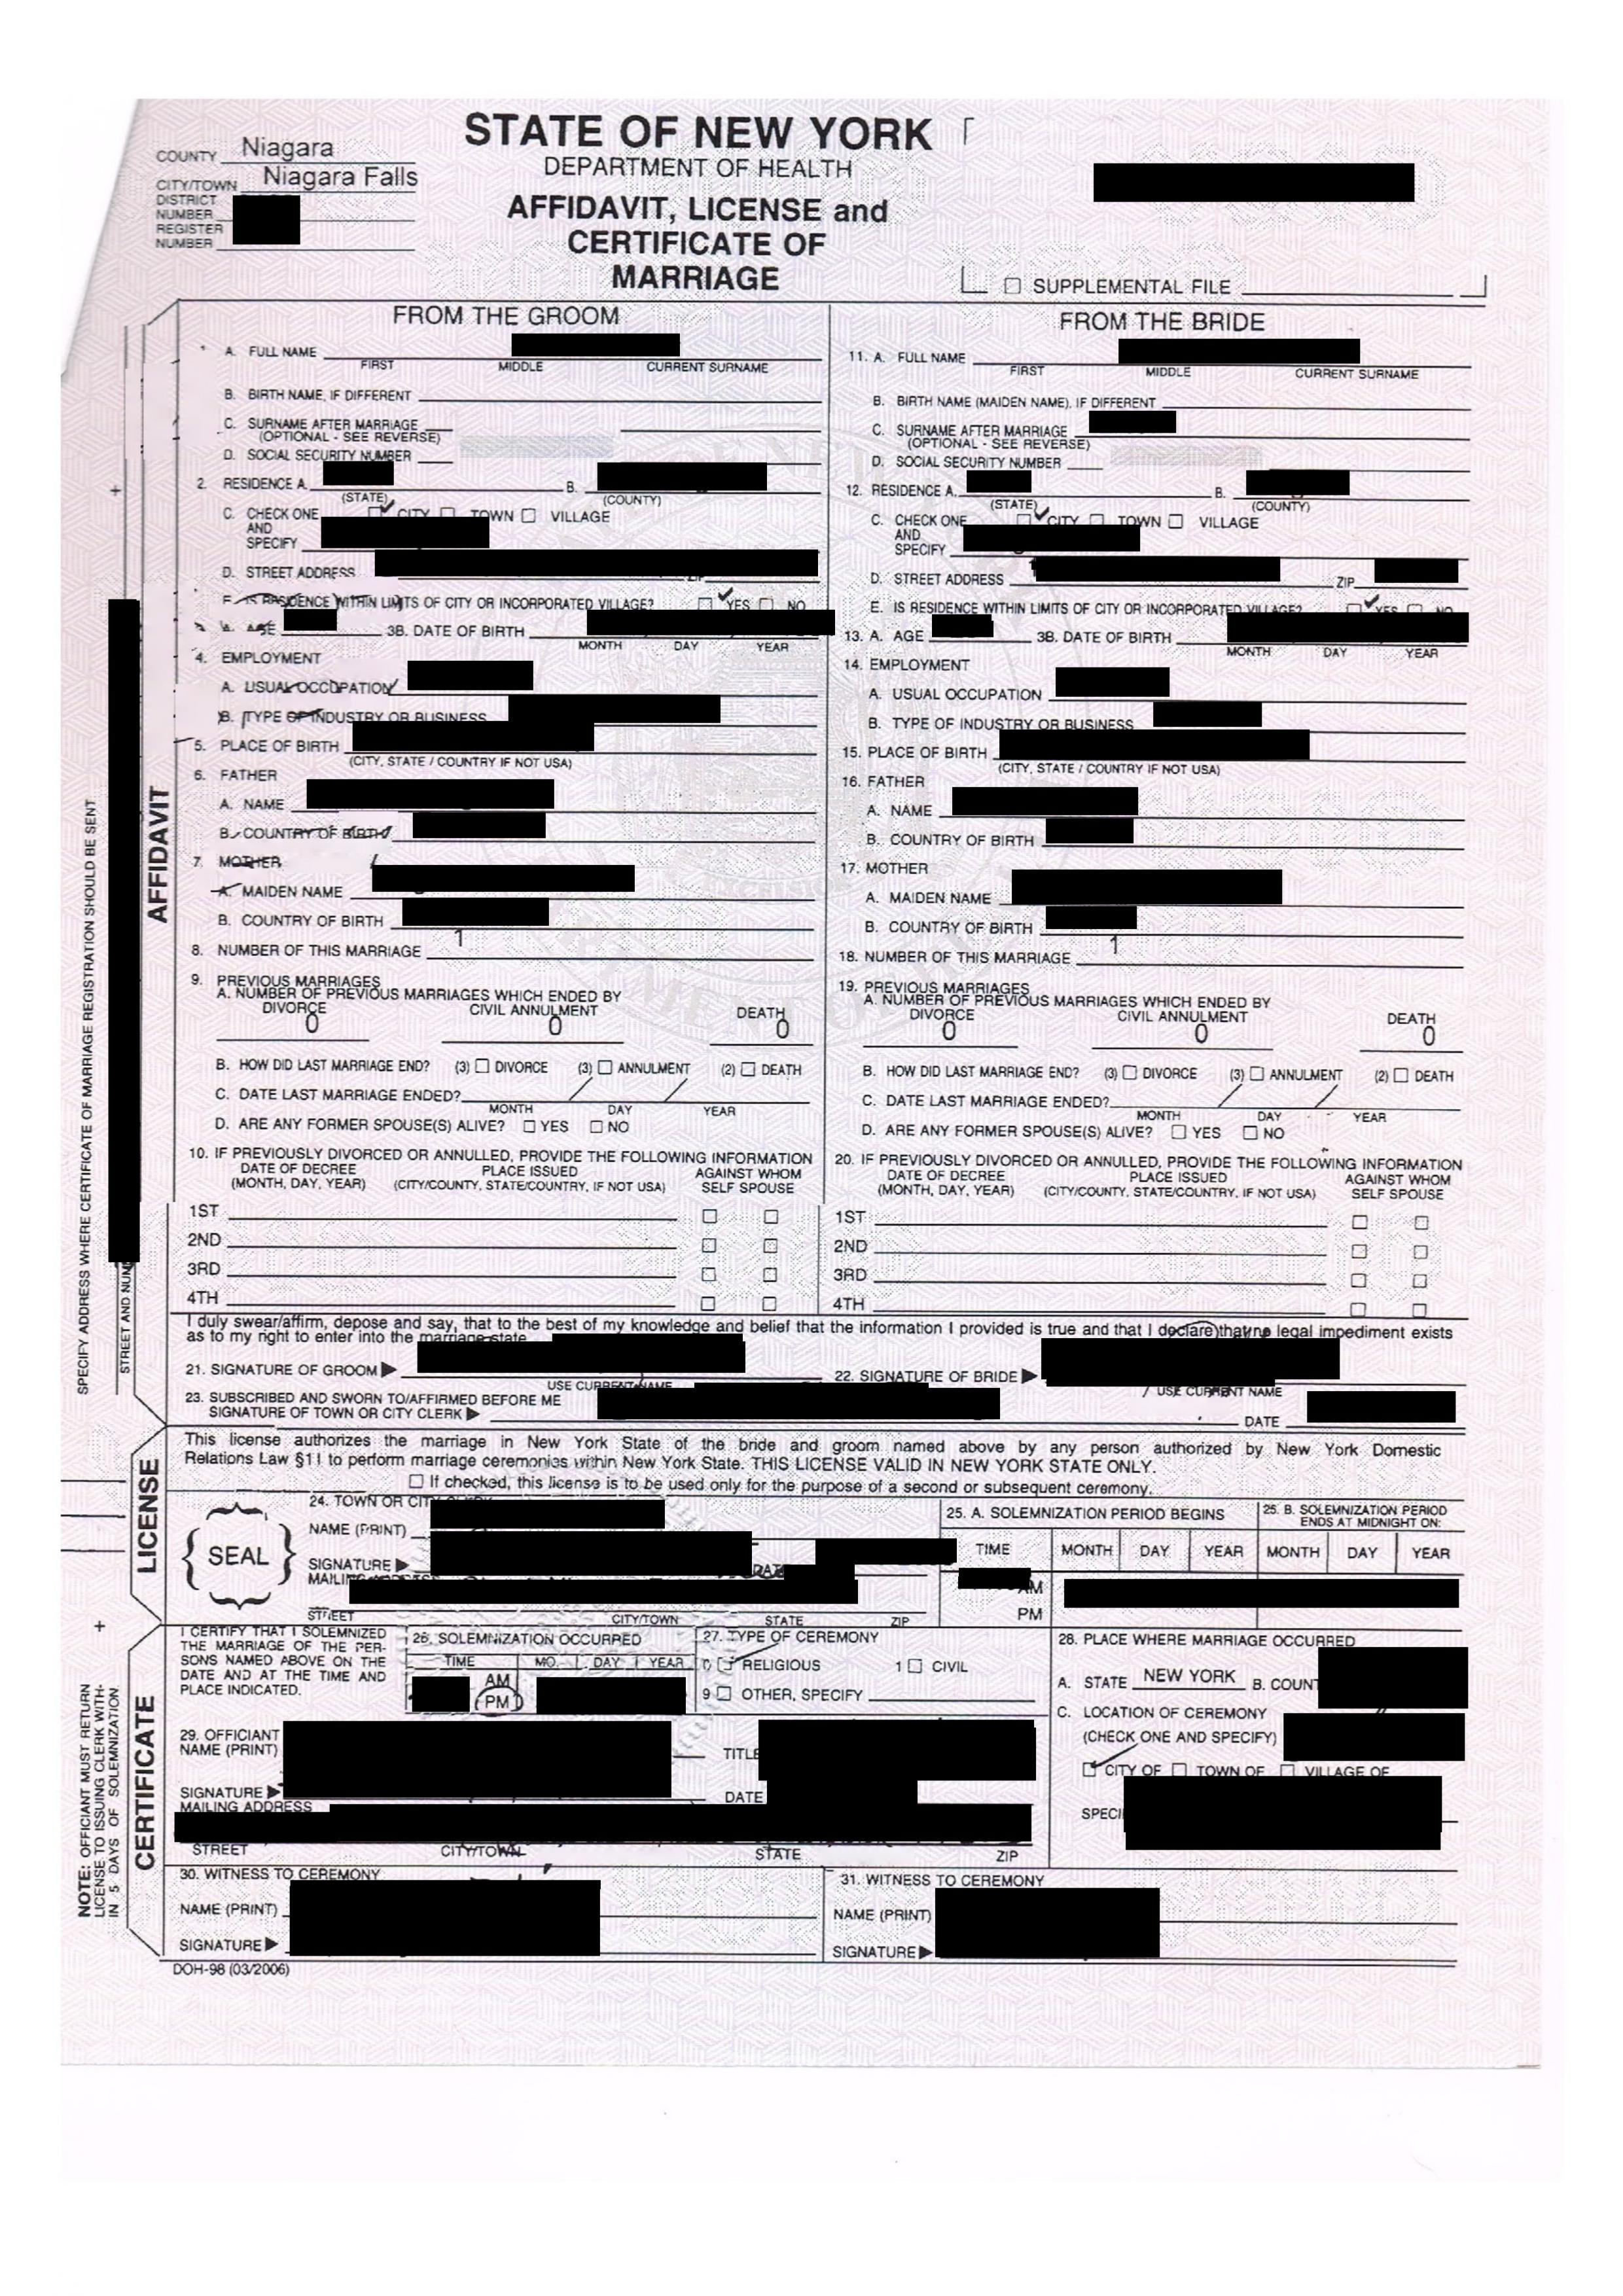 Affidavit License And Certificate Of Marriage State Of New York